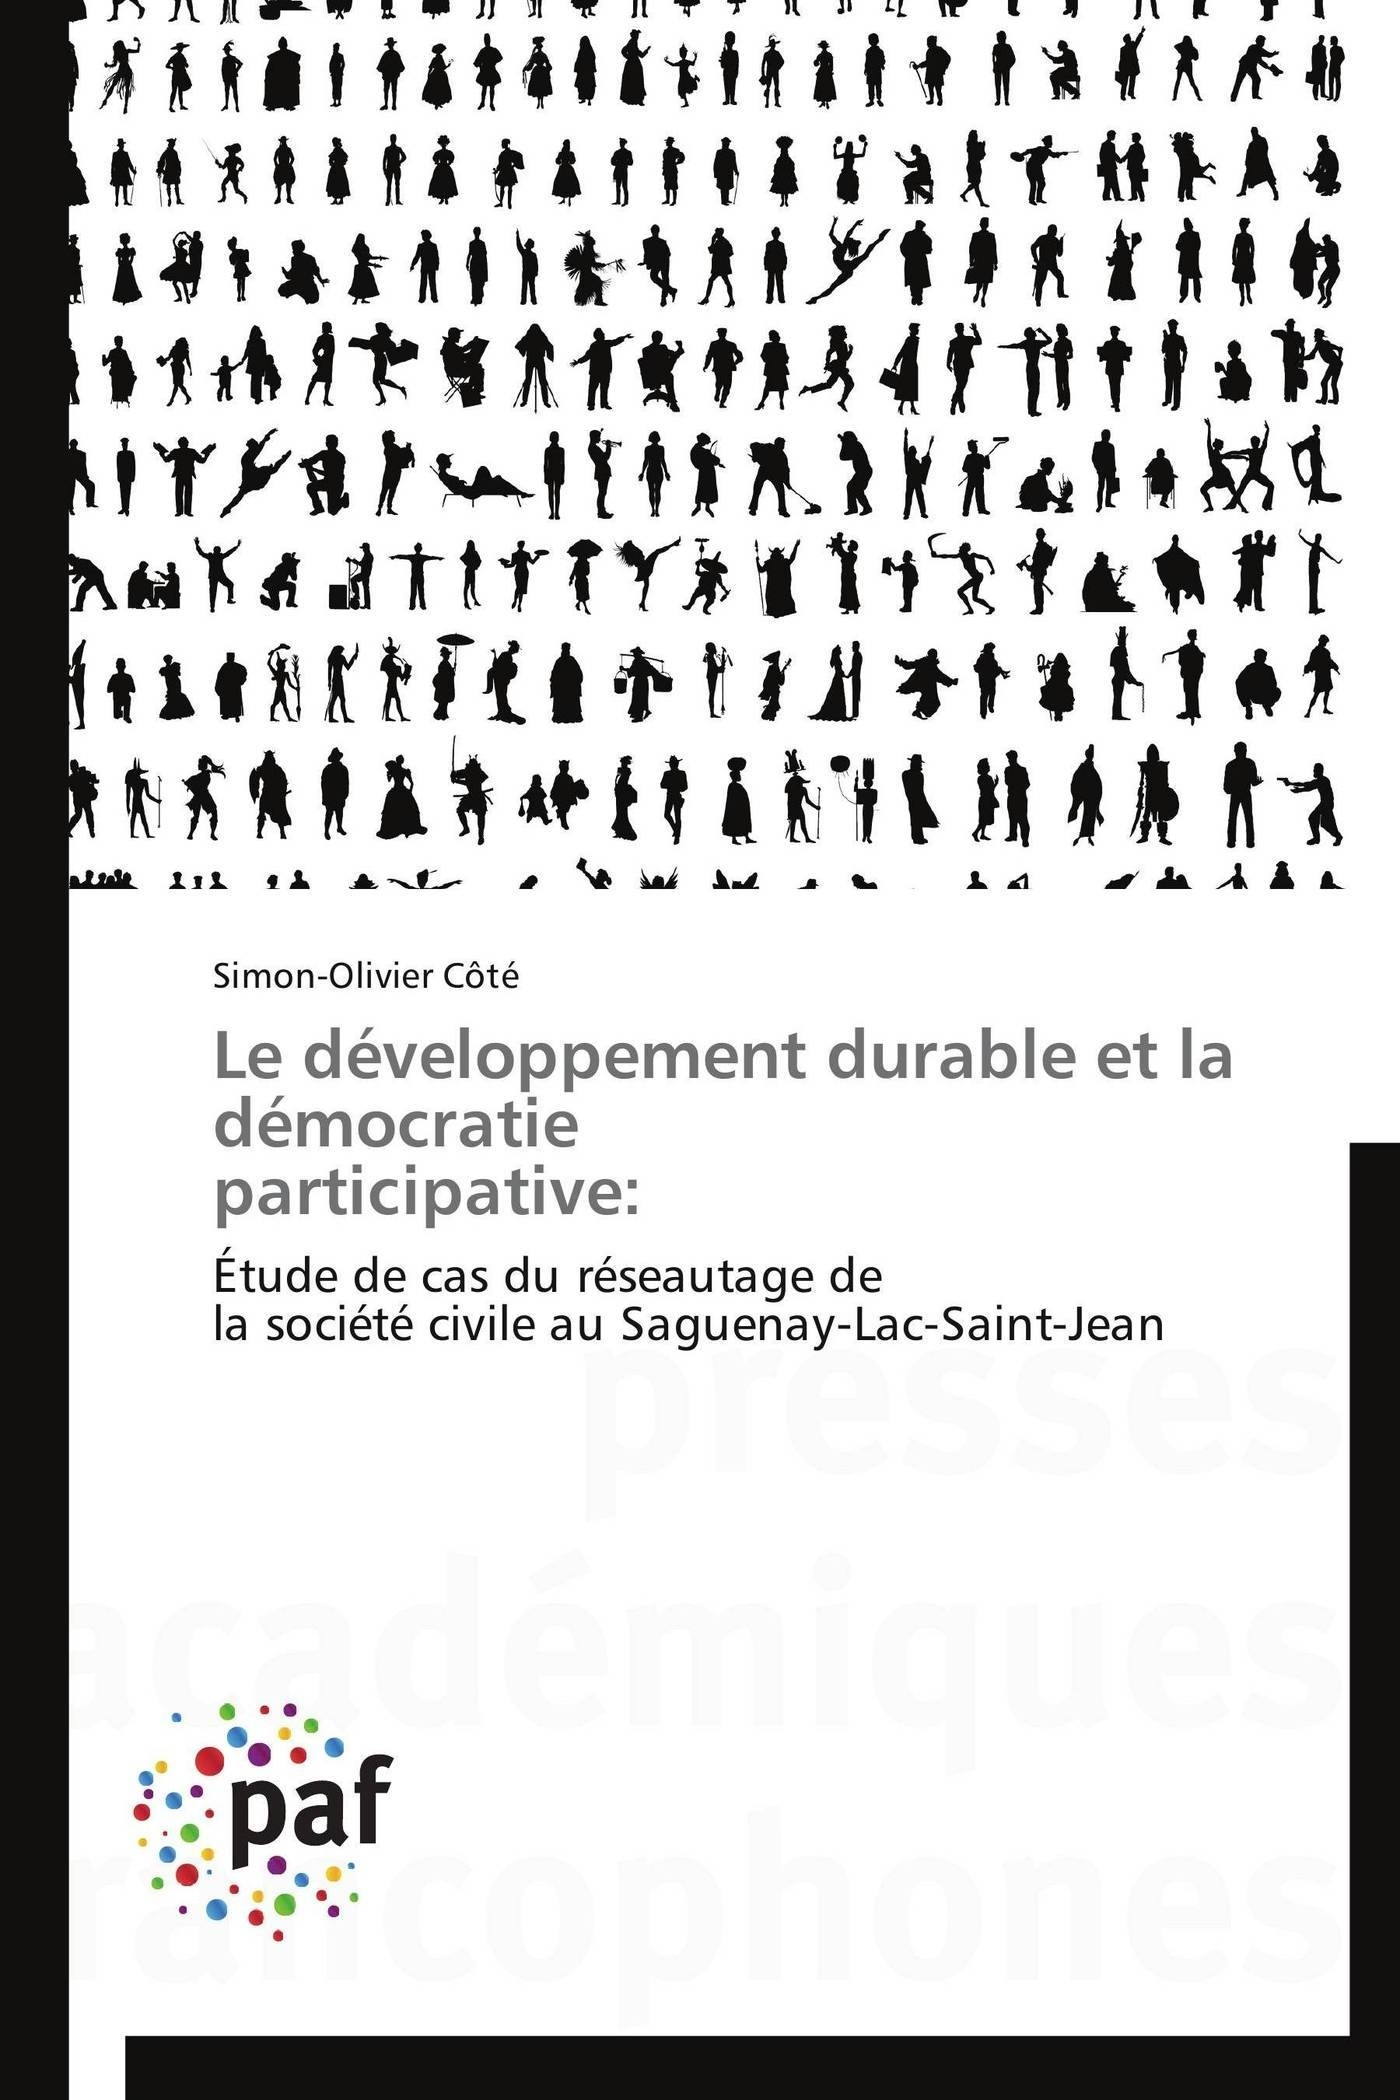 LE DEVELOPPEMENT DURABLE ET LA DEMOCRATIE PARTICIPATIVE: